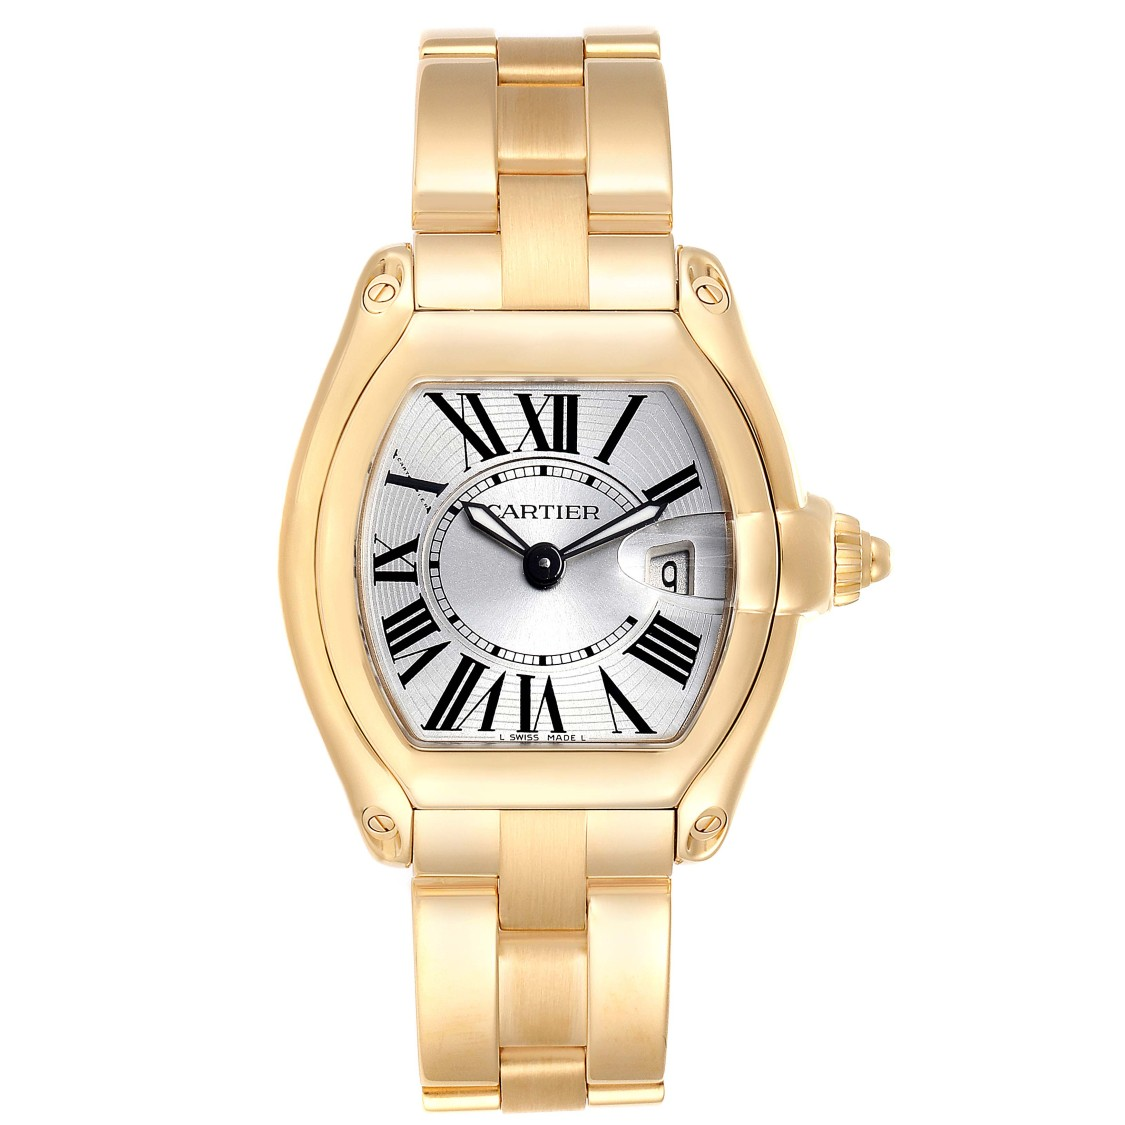 CARTIER ROADSTER LADIES 18K YELLOW GOLD LADIES WATCH W62018V1